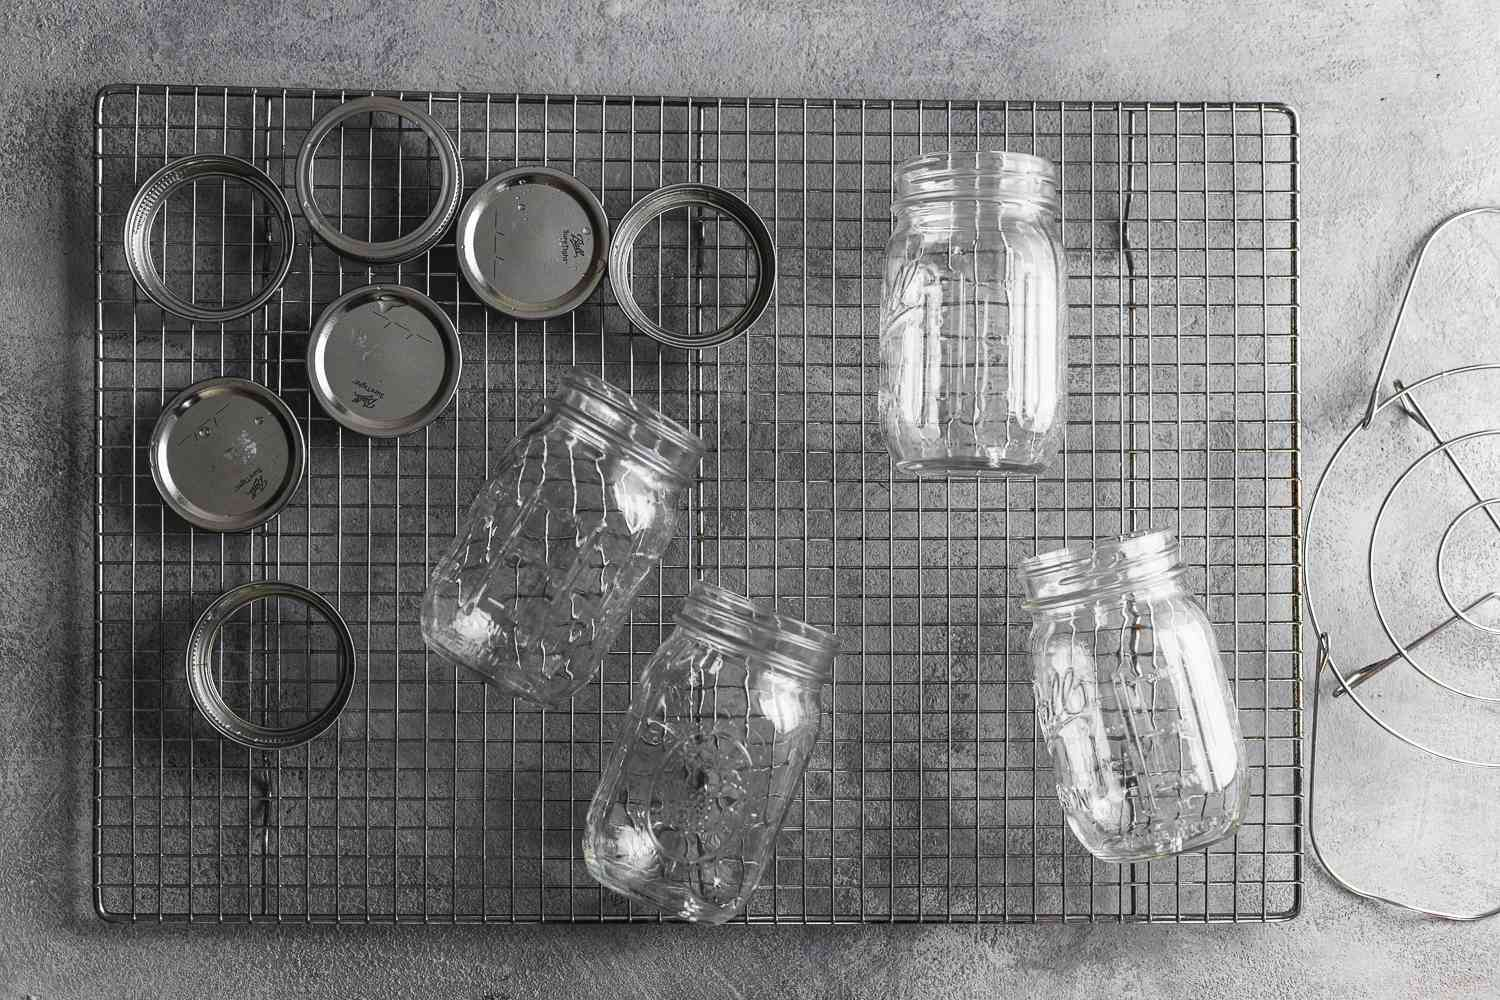 Sterilized glass jars and lids on a metal cooling rack